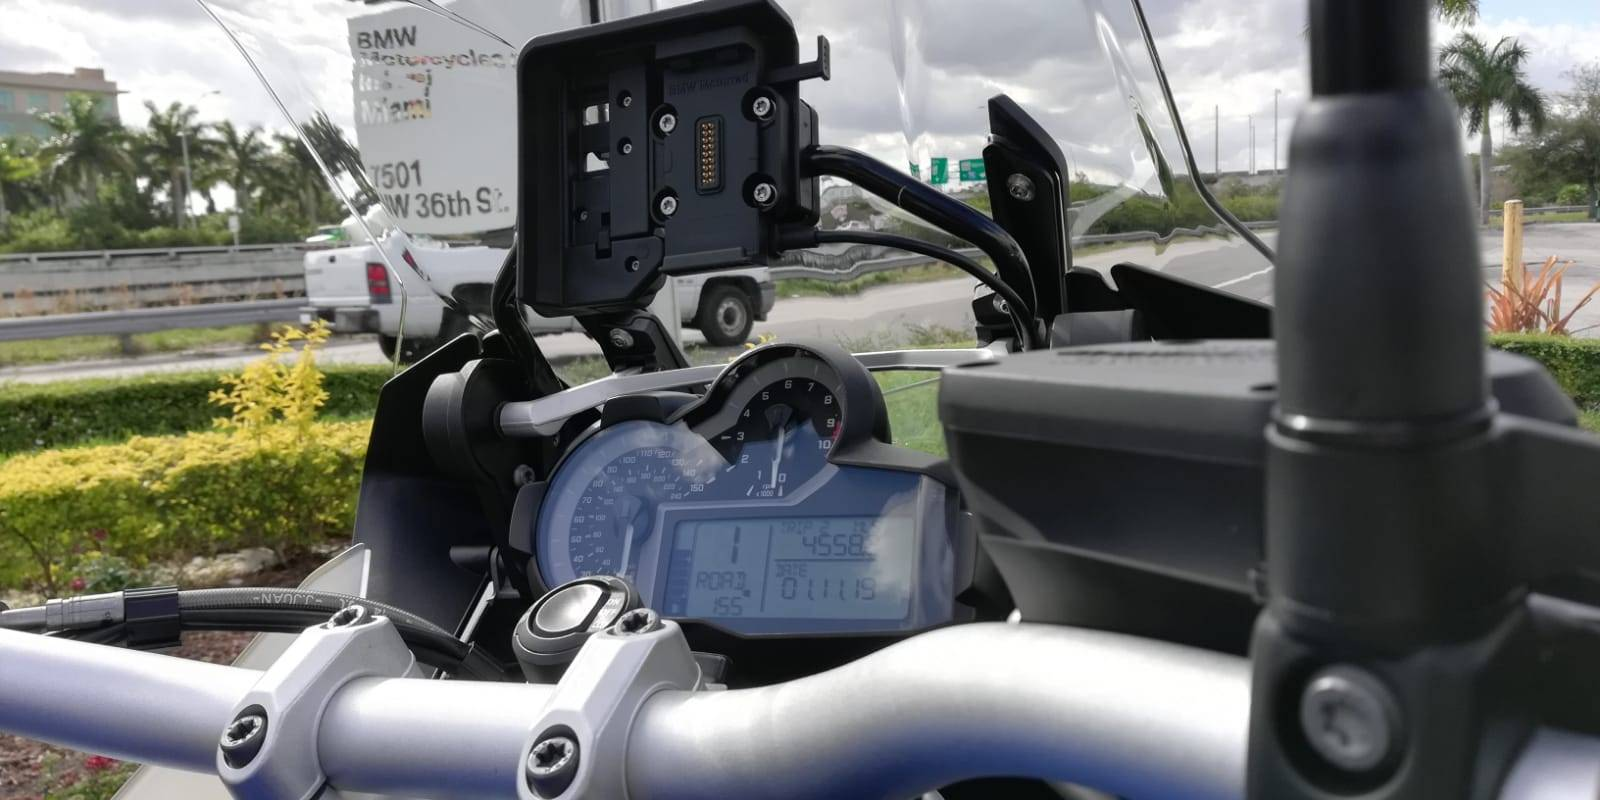 Used 2015 BMW R 1200 GSA for sale, BMW R 1200GSA for sale, BMW Motorcycle R1200GSA, used BMW Adventure, Dual, GS, BMW. BMW Motorcycles of Miami, Motorcycles of Miami, Motorcycles Miami, New Motorcycles, Used Motorcycles, pre-owned. #BMWMotorcyclesOfMiami #MotorcyclesOfMiami. - Photo 23